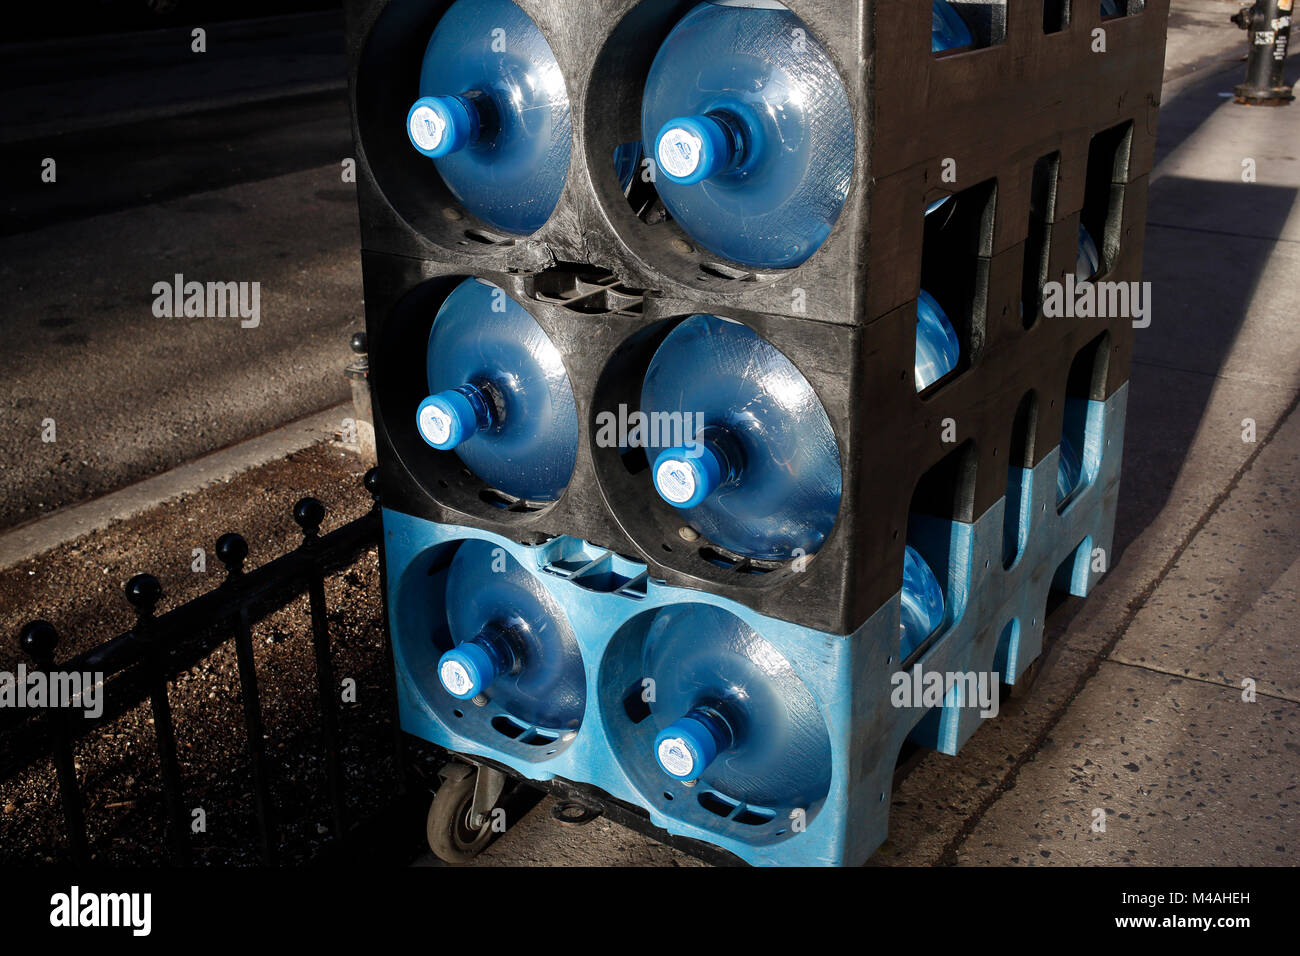 Delivering jugs for a water cooler - Stock Image